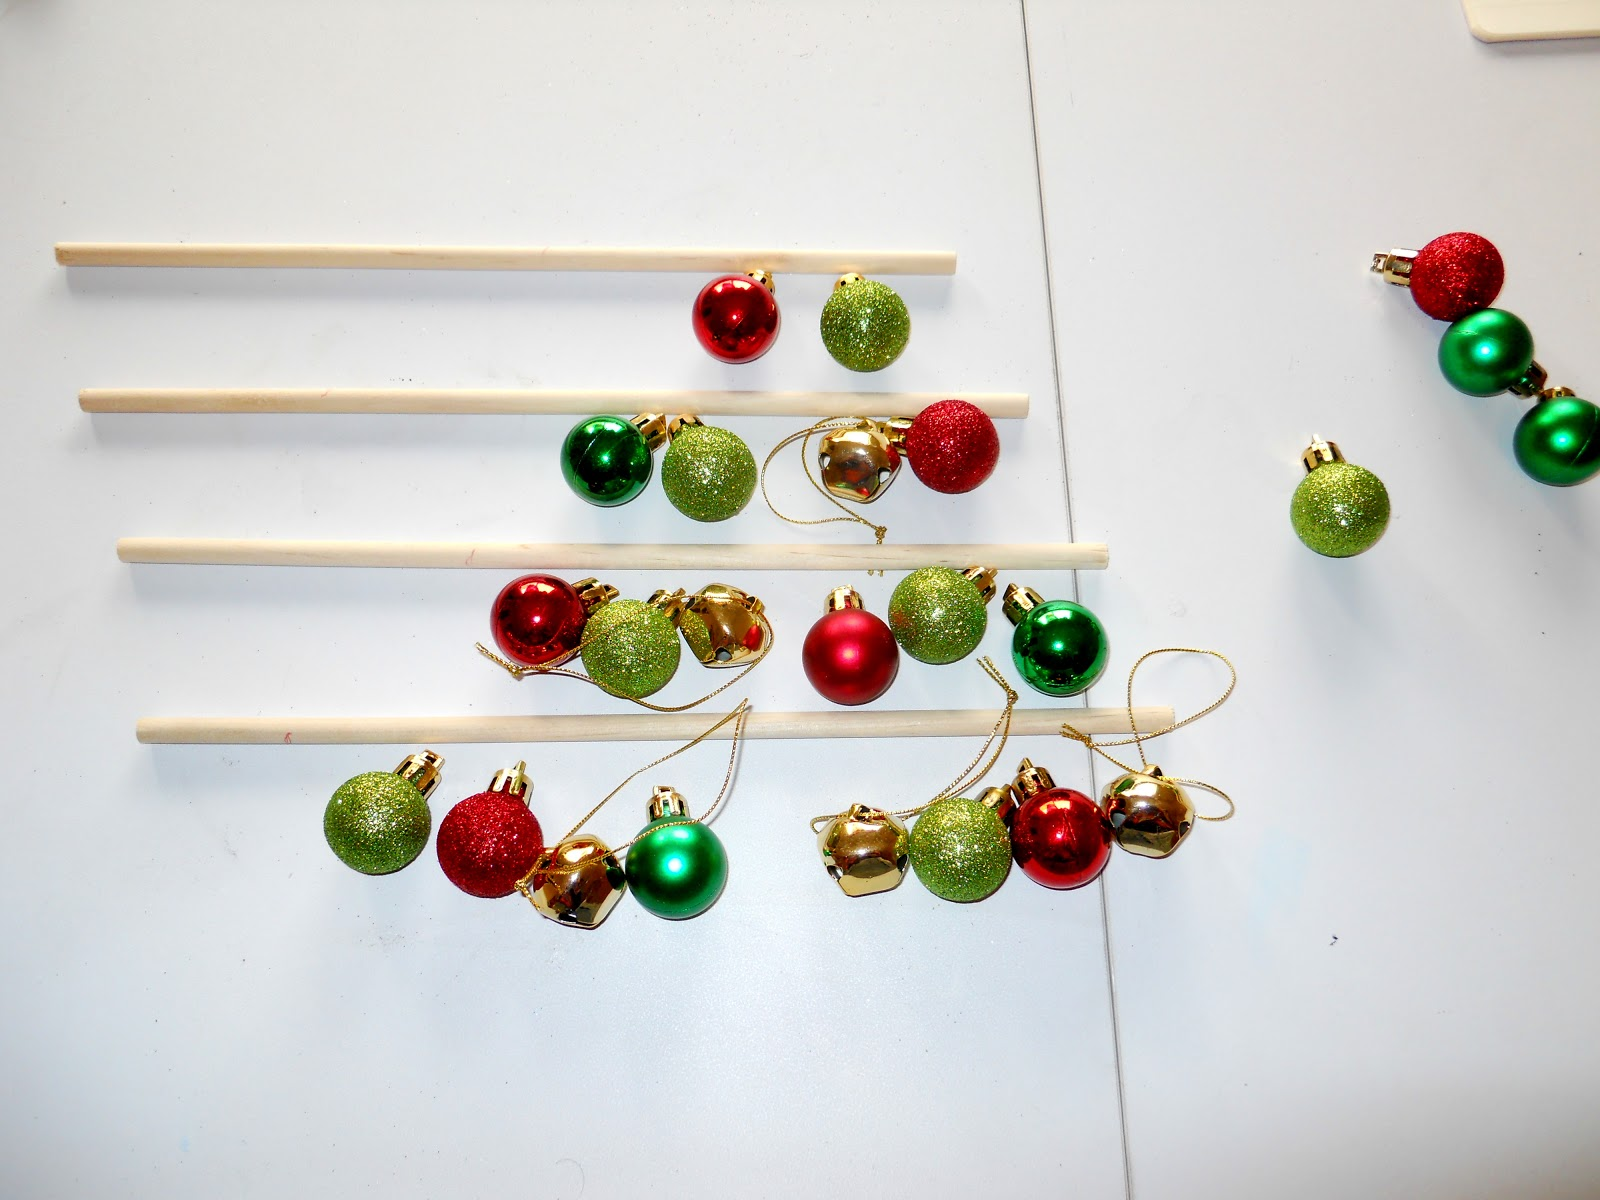 Tiny christmas tree ornaments - First Lay Out How You Want Your Ornaments Arranged So That You Know Where To Cut Your Dowels I Wanted Four Rows So I Did 8 Bulbs On The Bottom Then 6